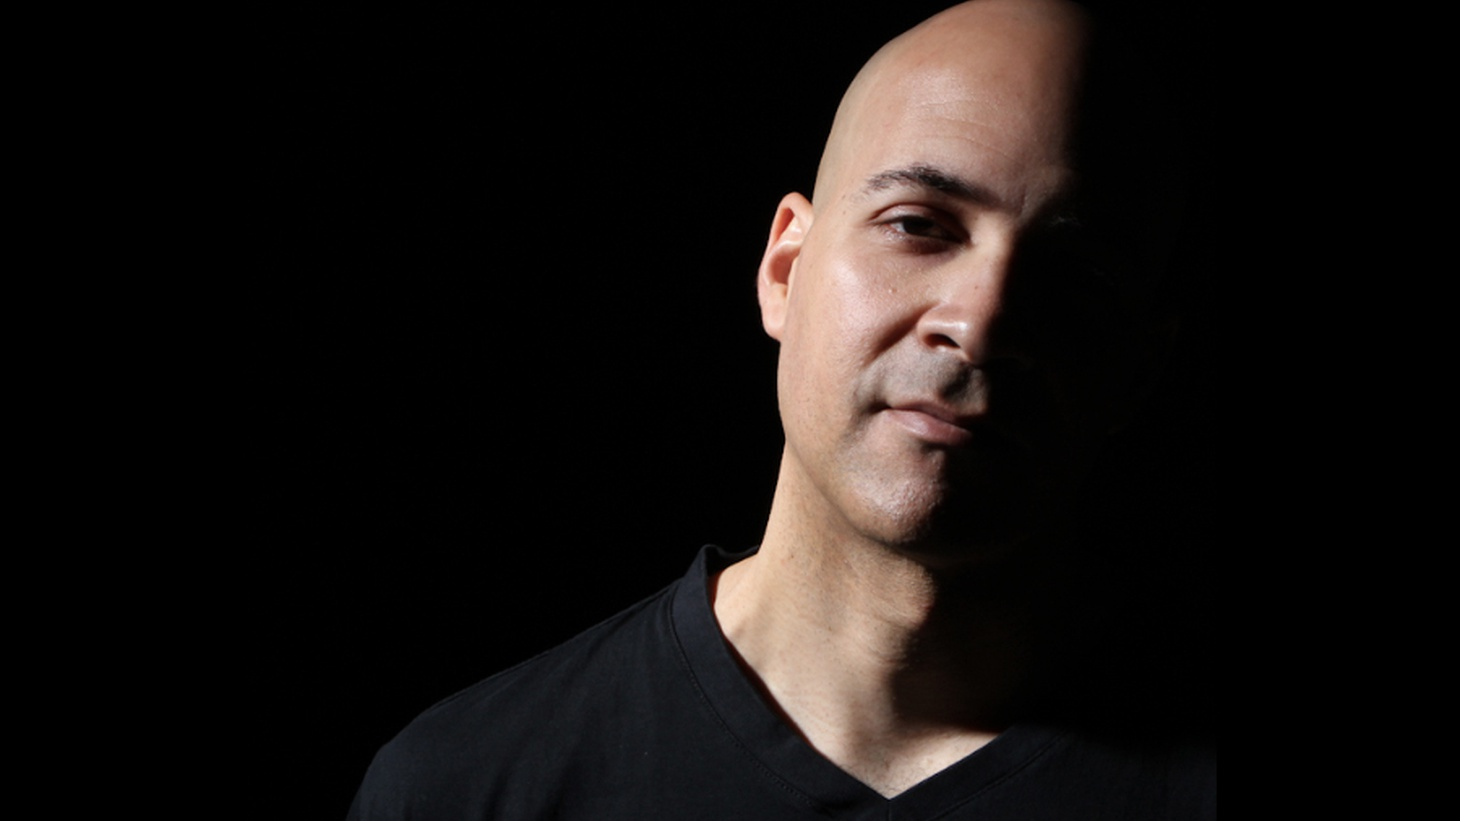 DJ and producer extraordinaire, Charlie Dark of Attica Blues, joins Garth Trinidad at 11pm on Chocolate City.  Charlie Dark will be spinning August 8 @ Black Palette Circuitry III at Moomba in West Hollywood.. www.mir-media.com